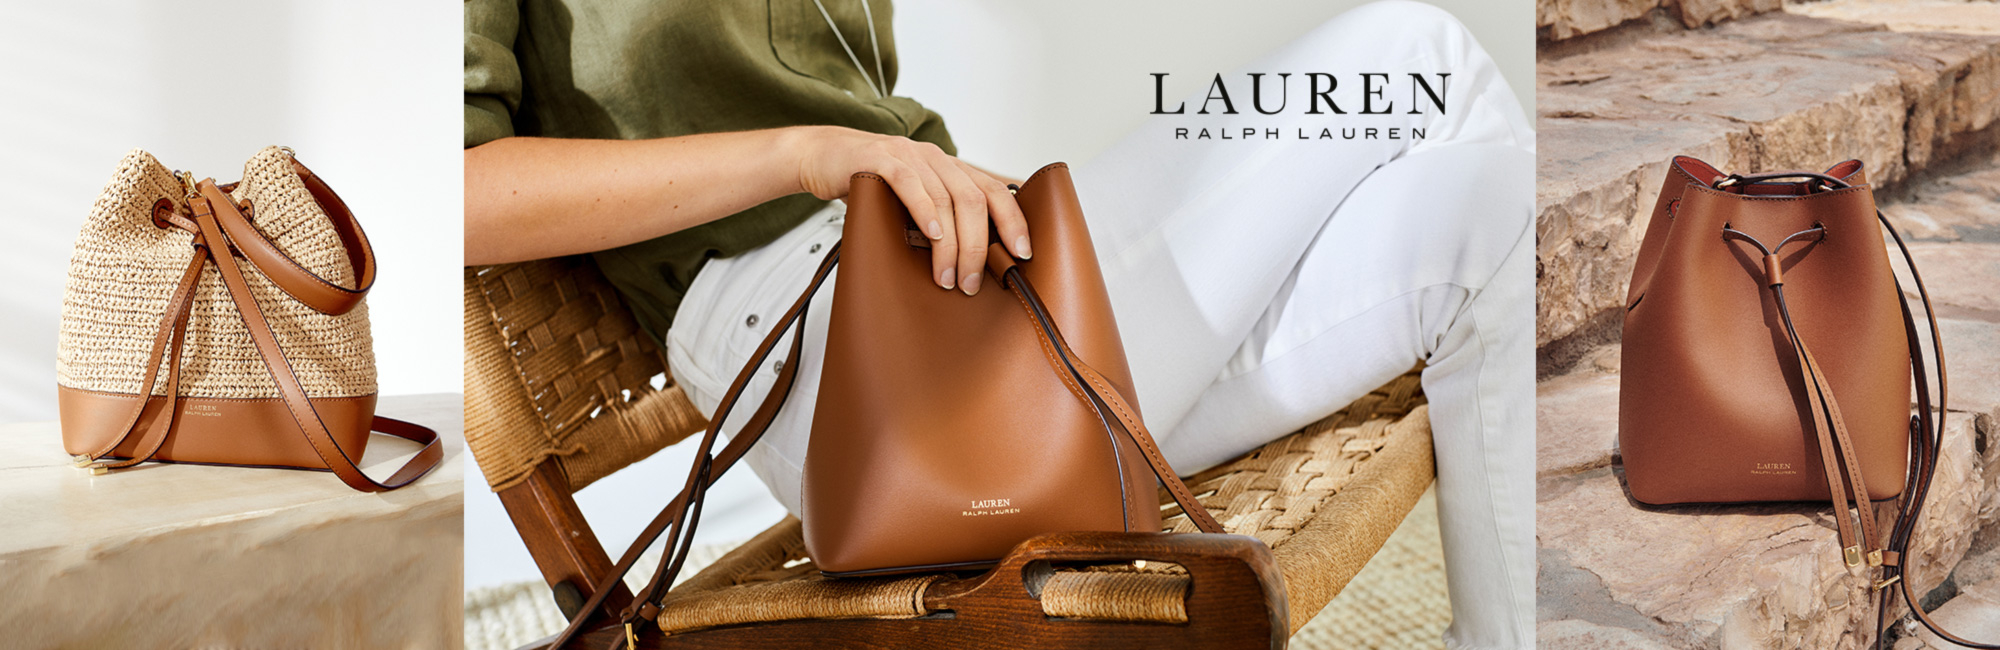 Lauren Ralph Lauren Bags and Handbags - Designer Bags Shop - wardow.com f5e981499dfdc